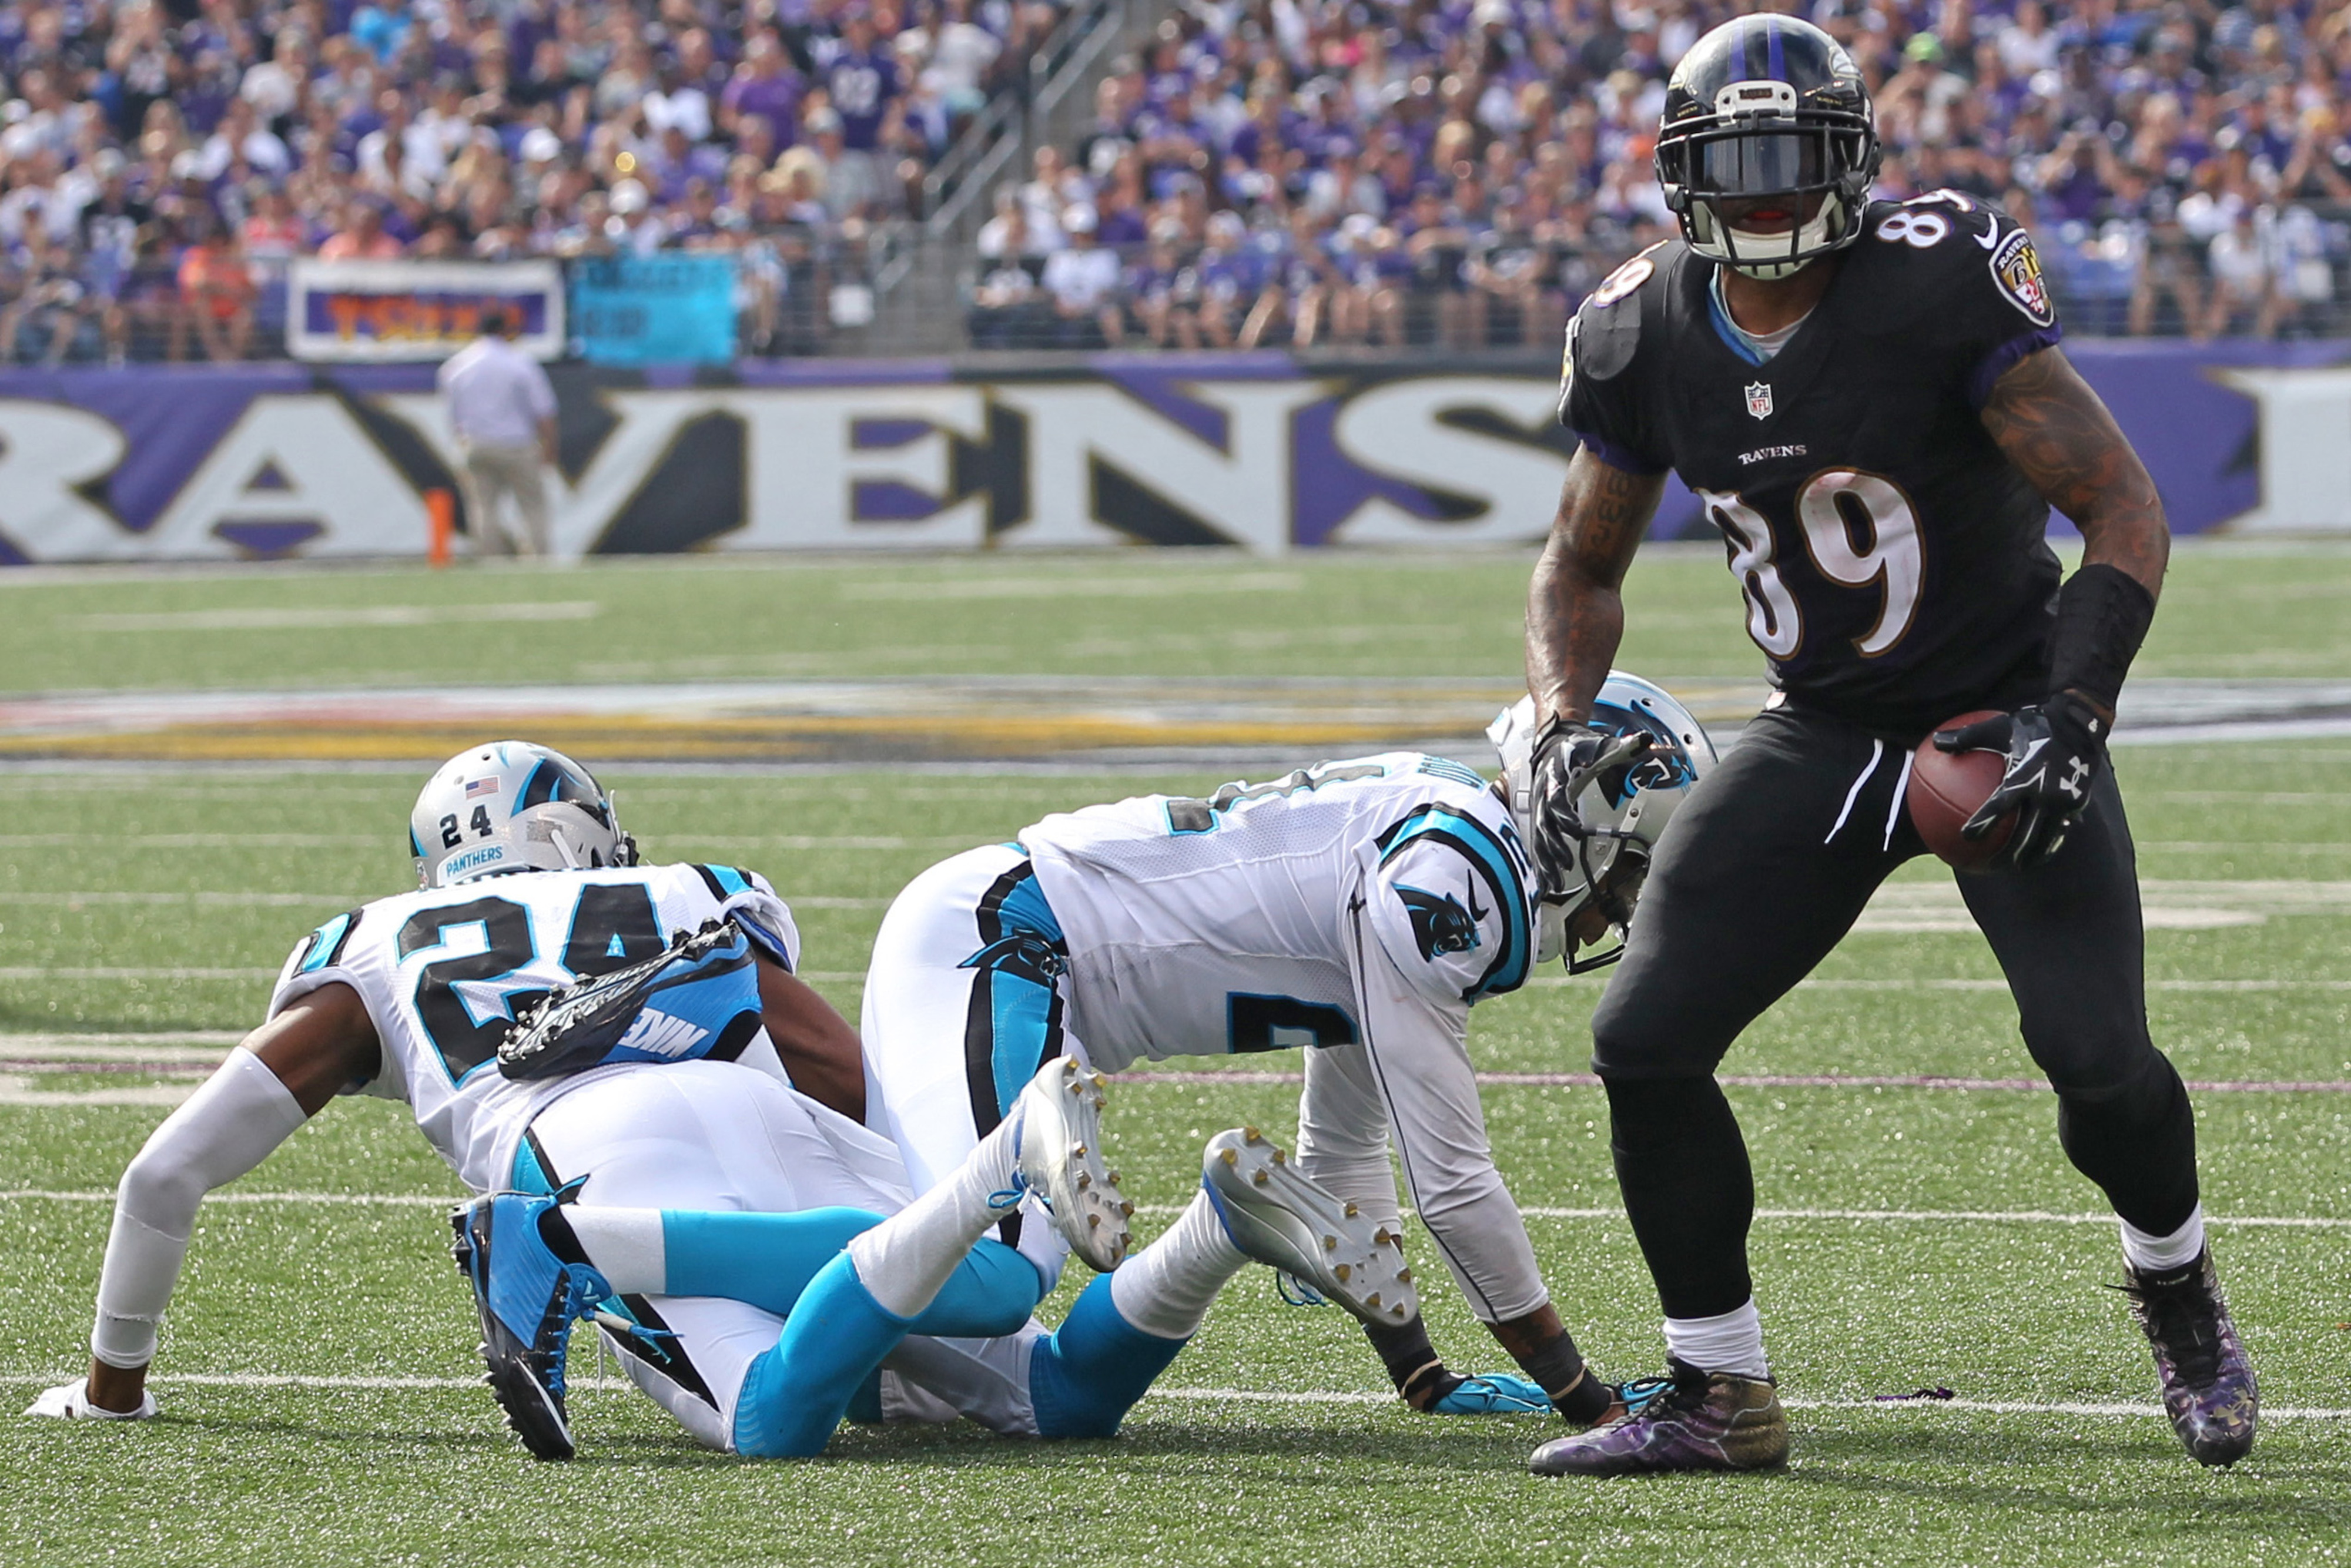 Steve Smith brings the blood and guts